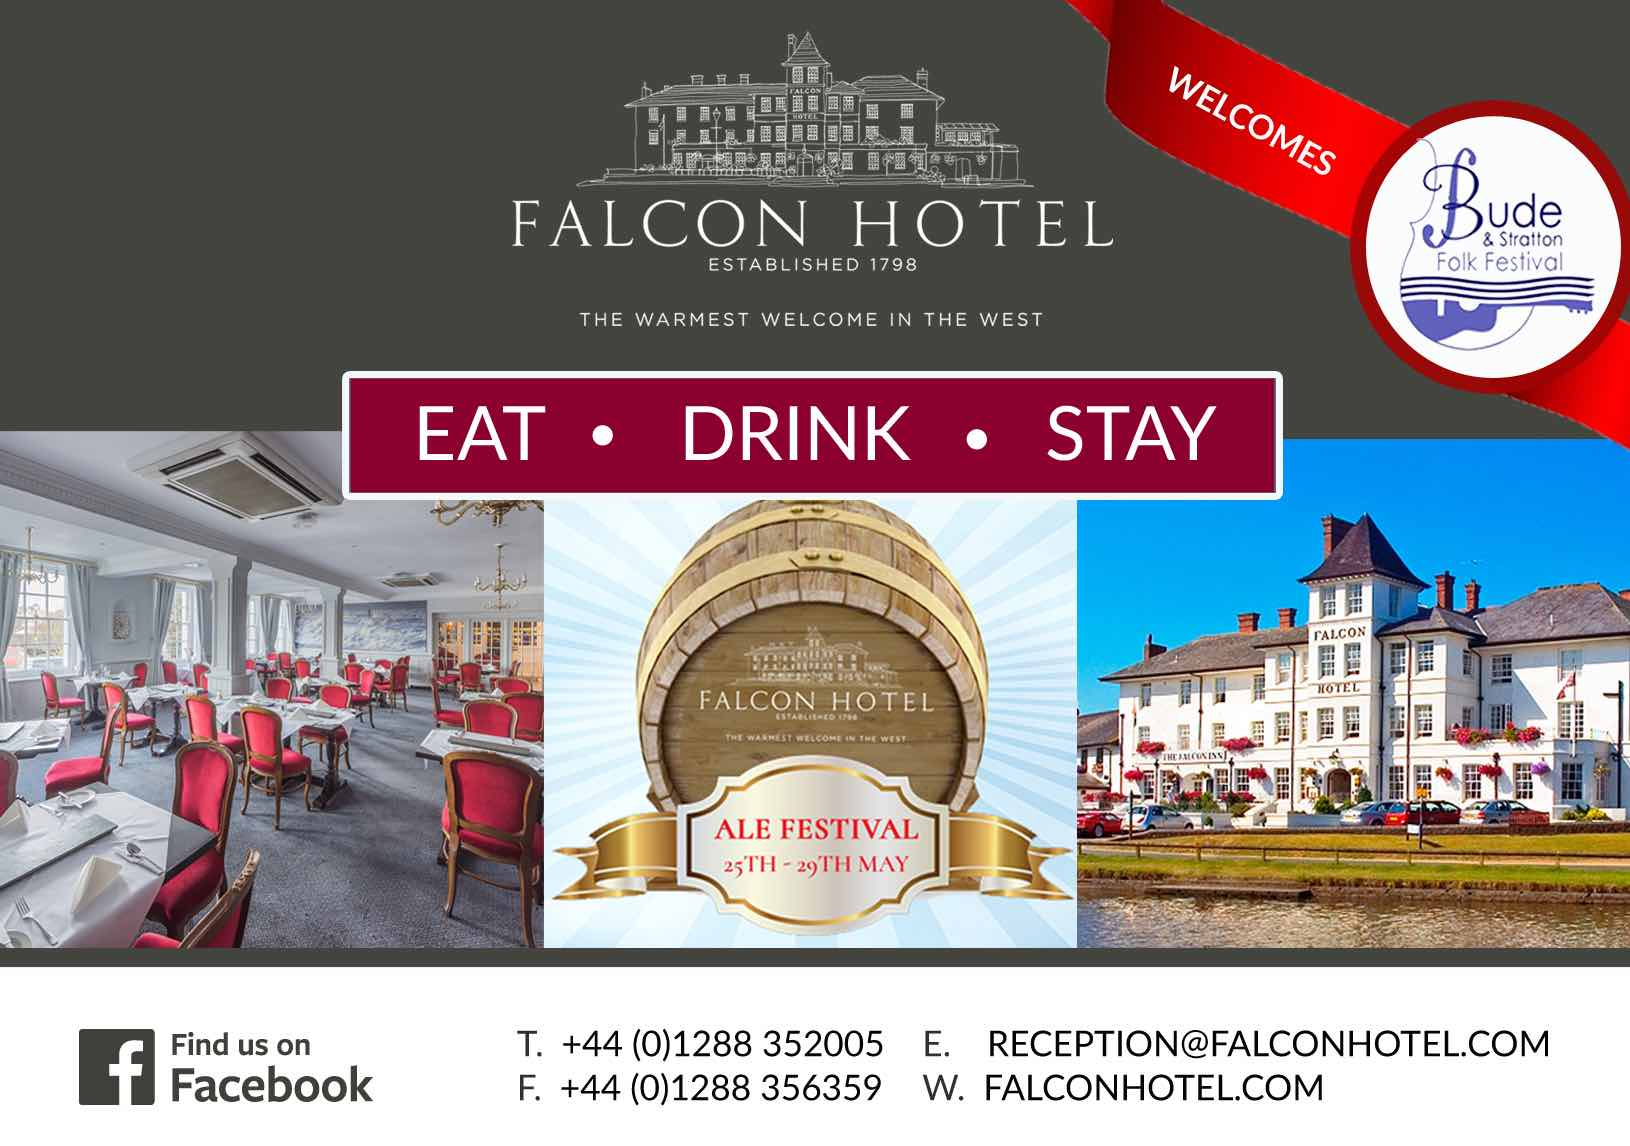 Small ad for the Falcon Hotel, Bude